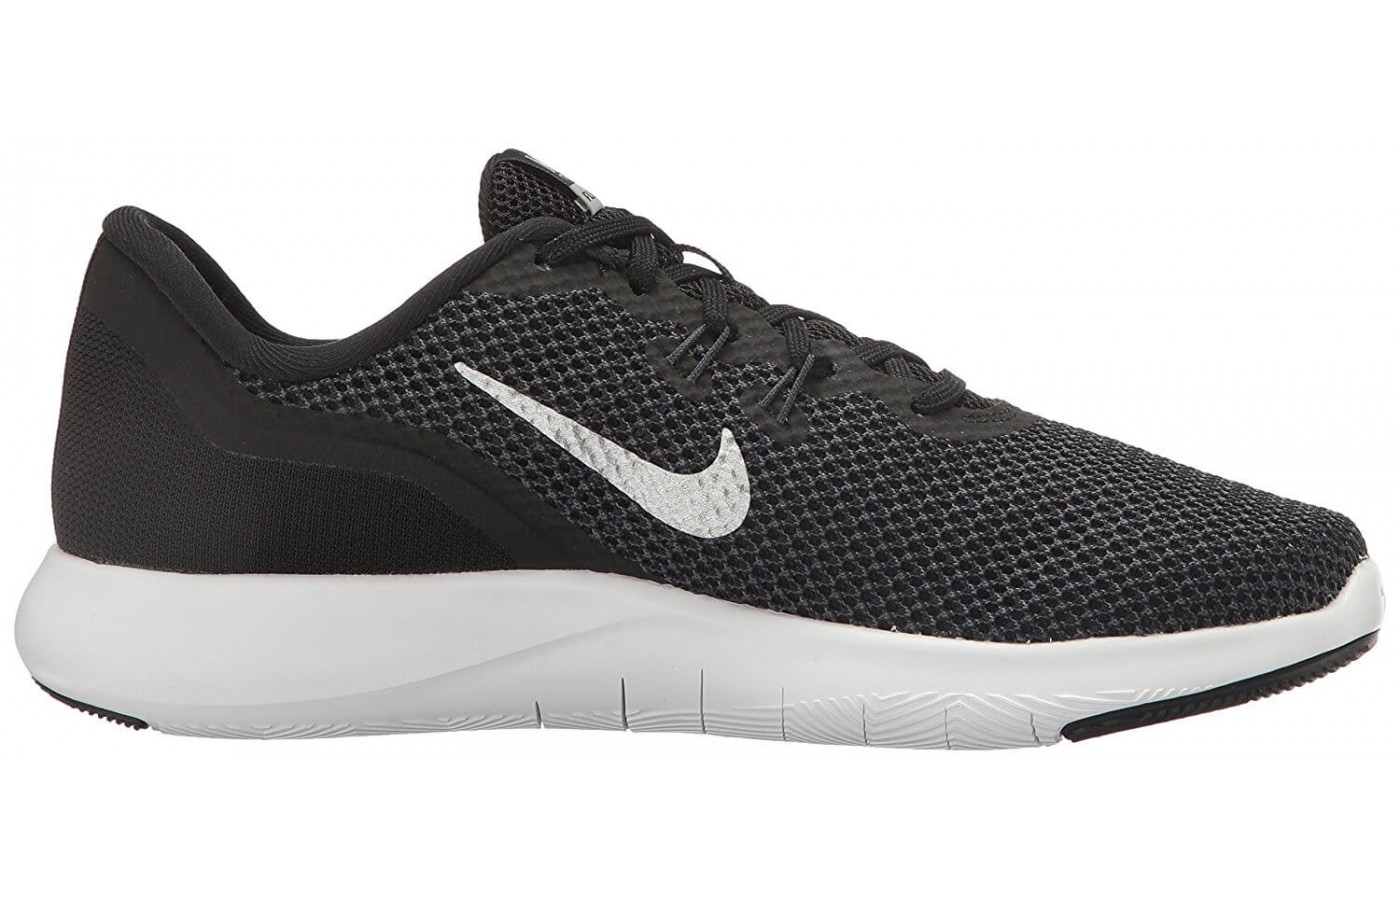 Nike Flex trainer 7 Medial